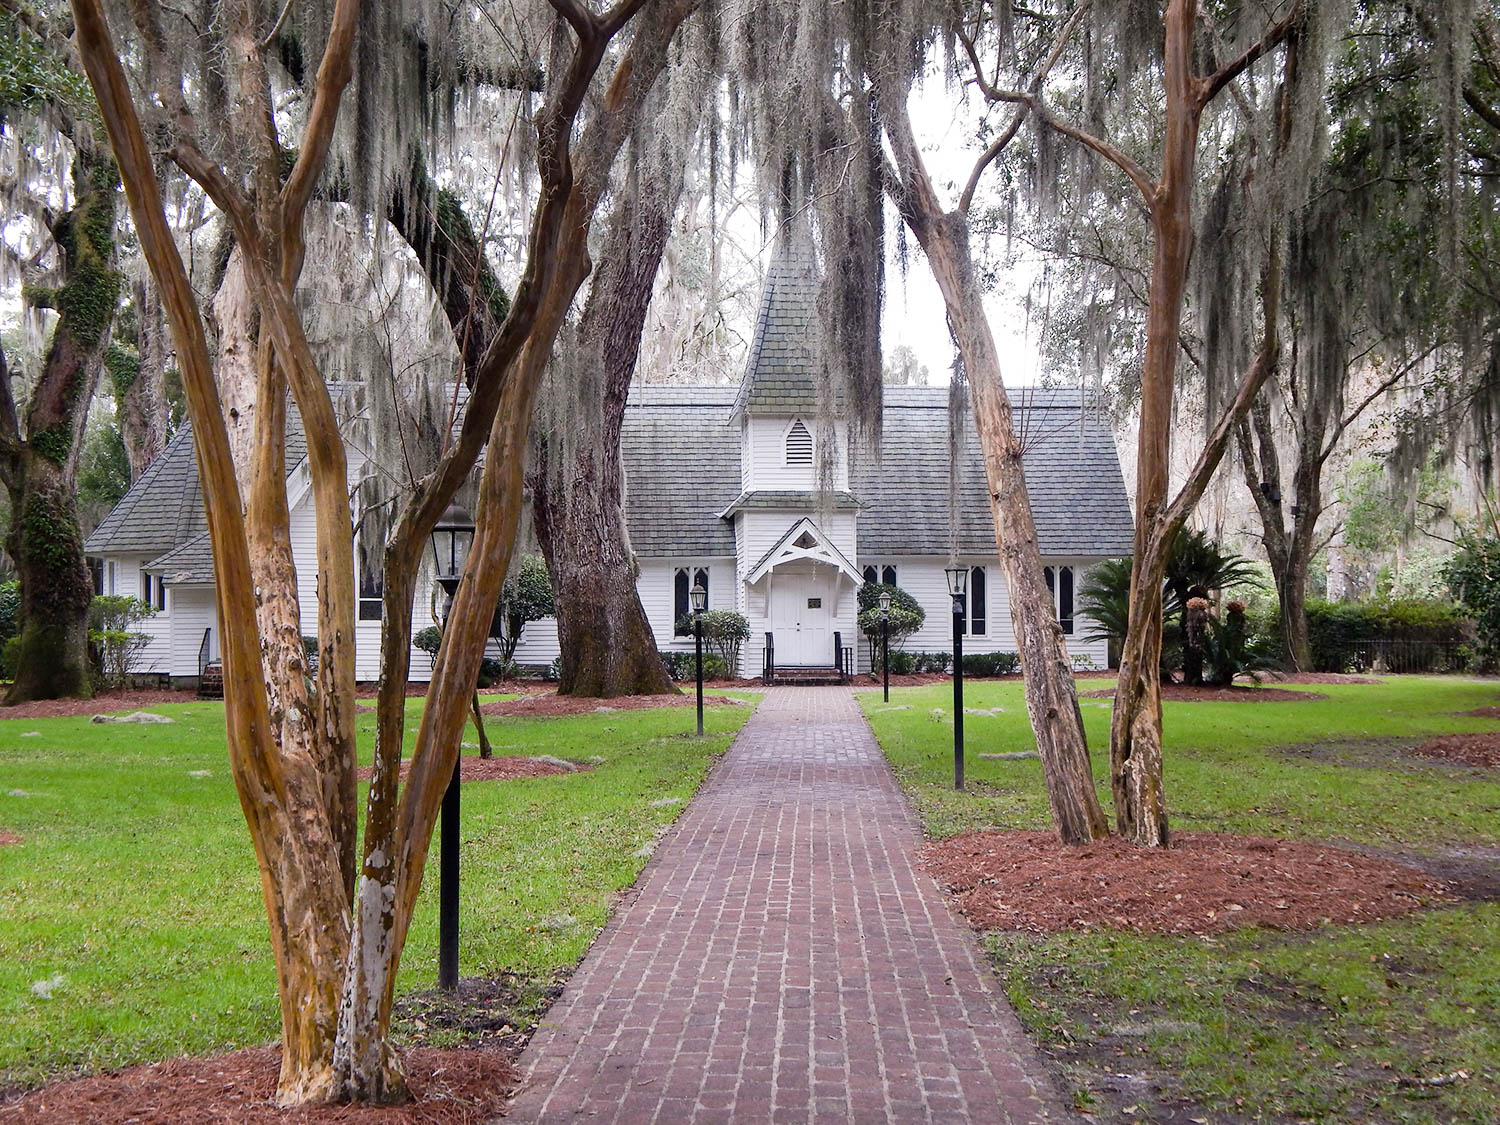 6 Things To Do in St. Simons Island - Bianca Dottin